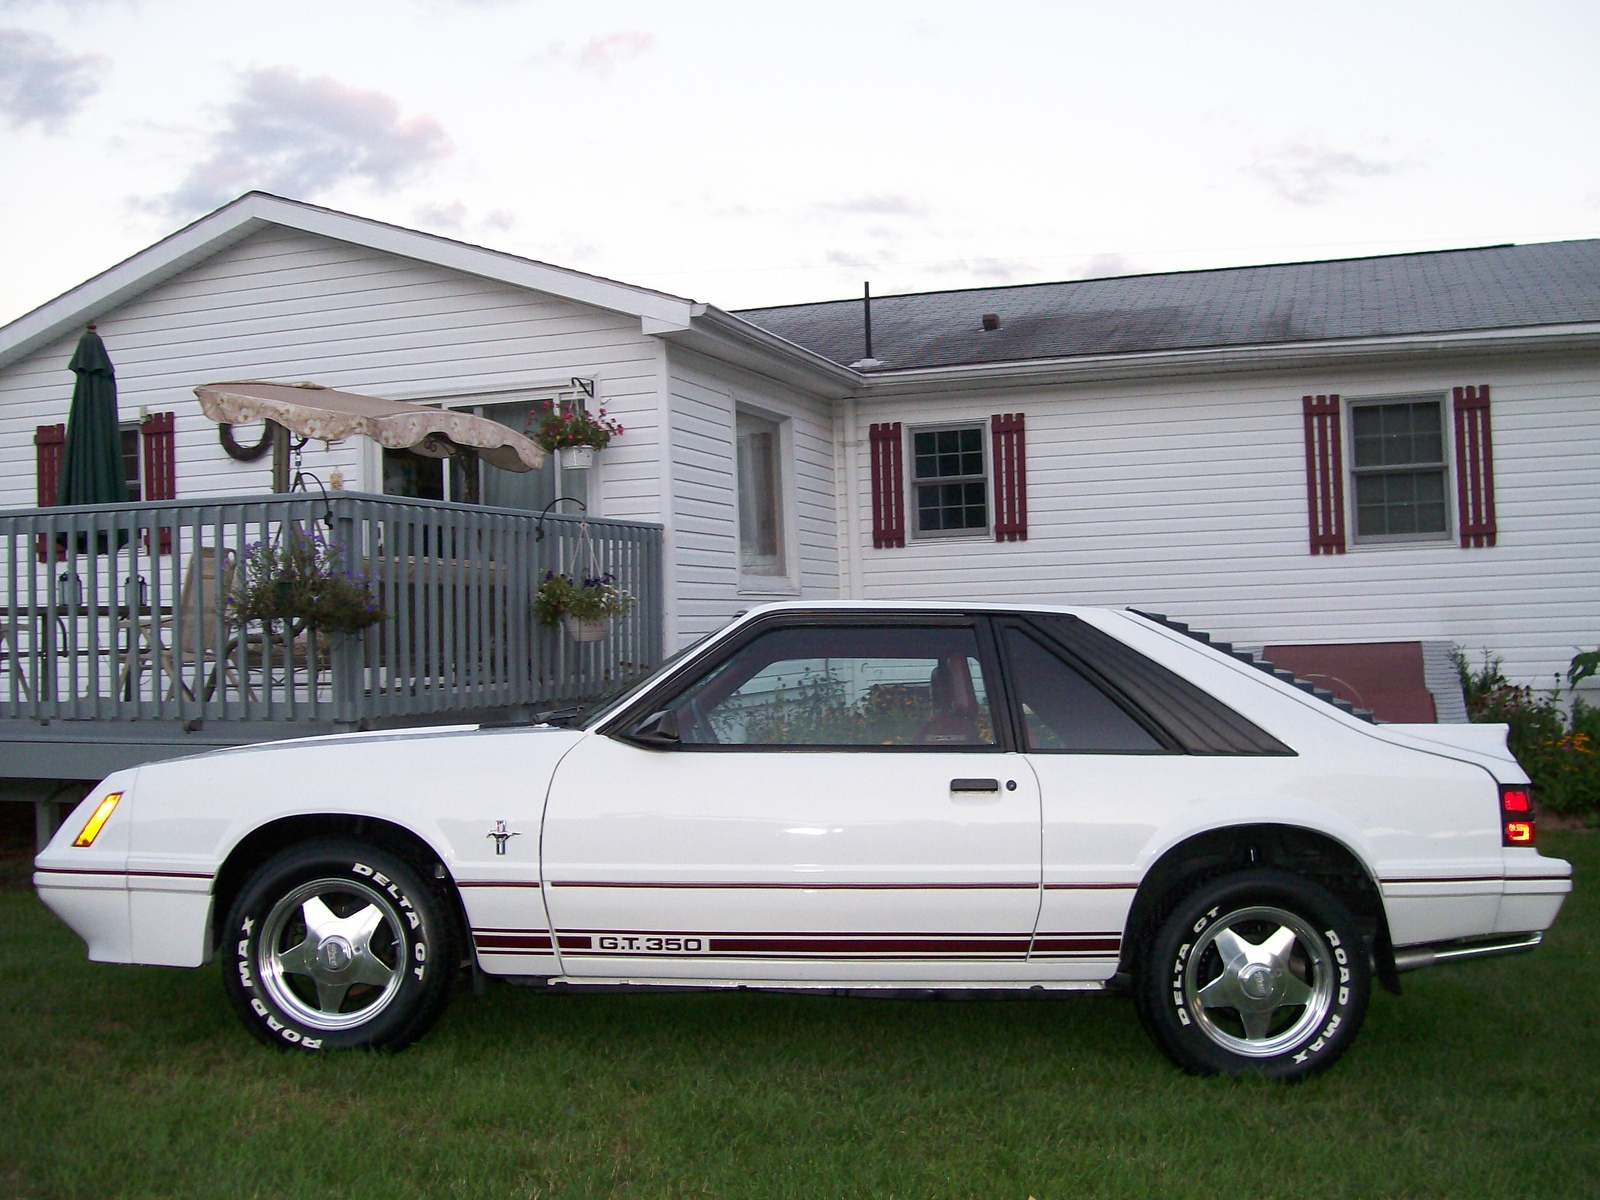 Picture of 1984 ford mustang gt350 exterior - Filename 1984_ford_mustang_gt350 Pic 19581 Jpeg